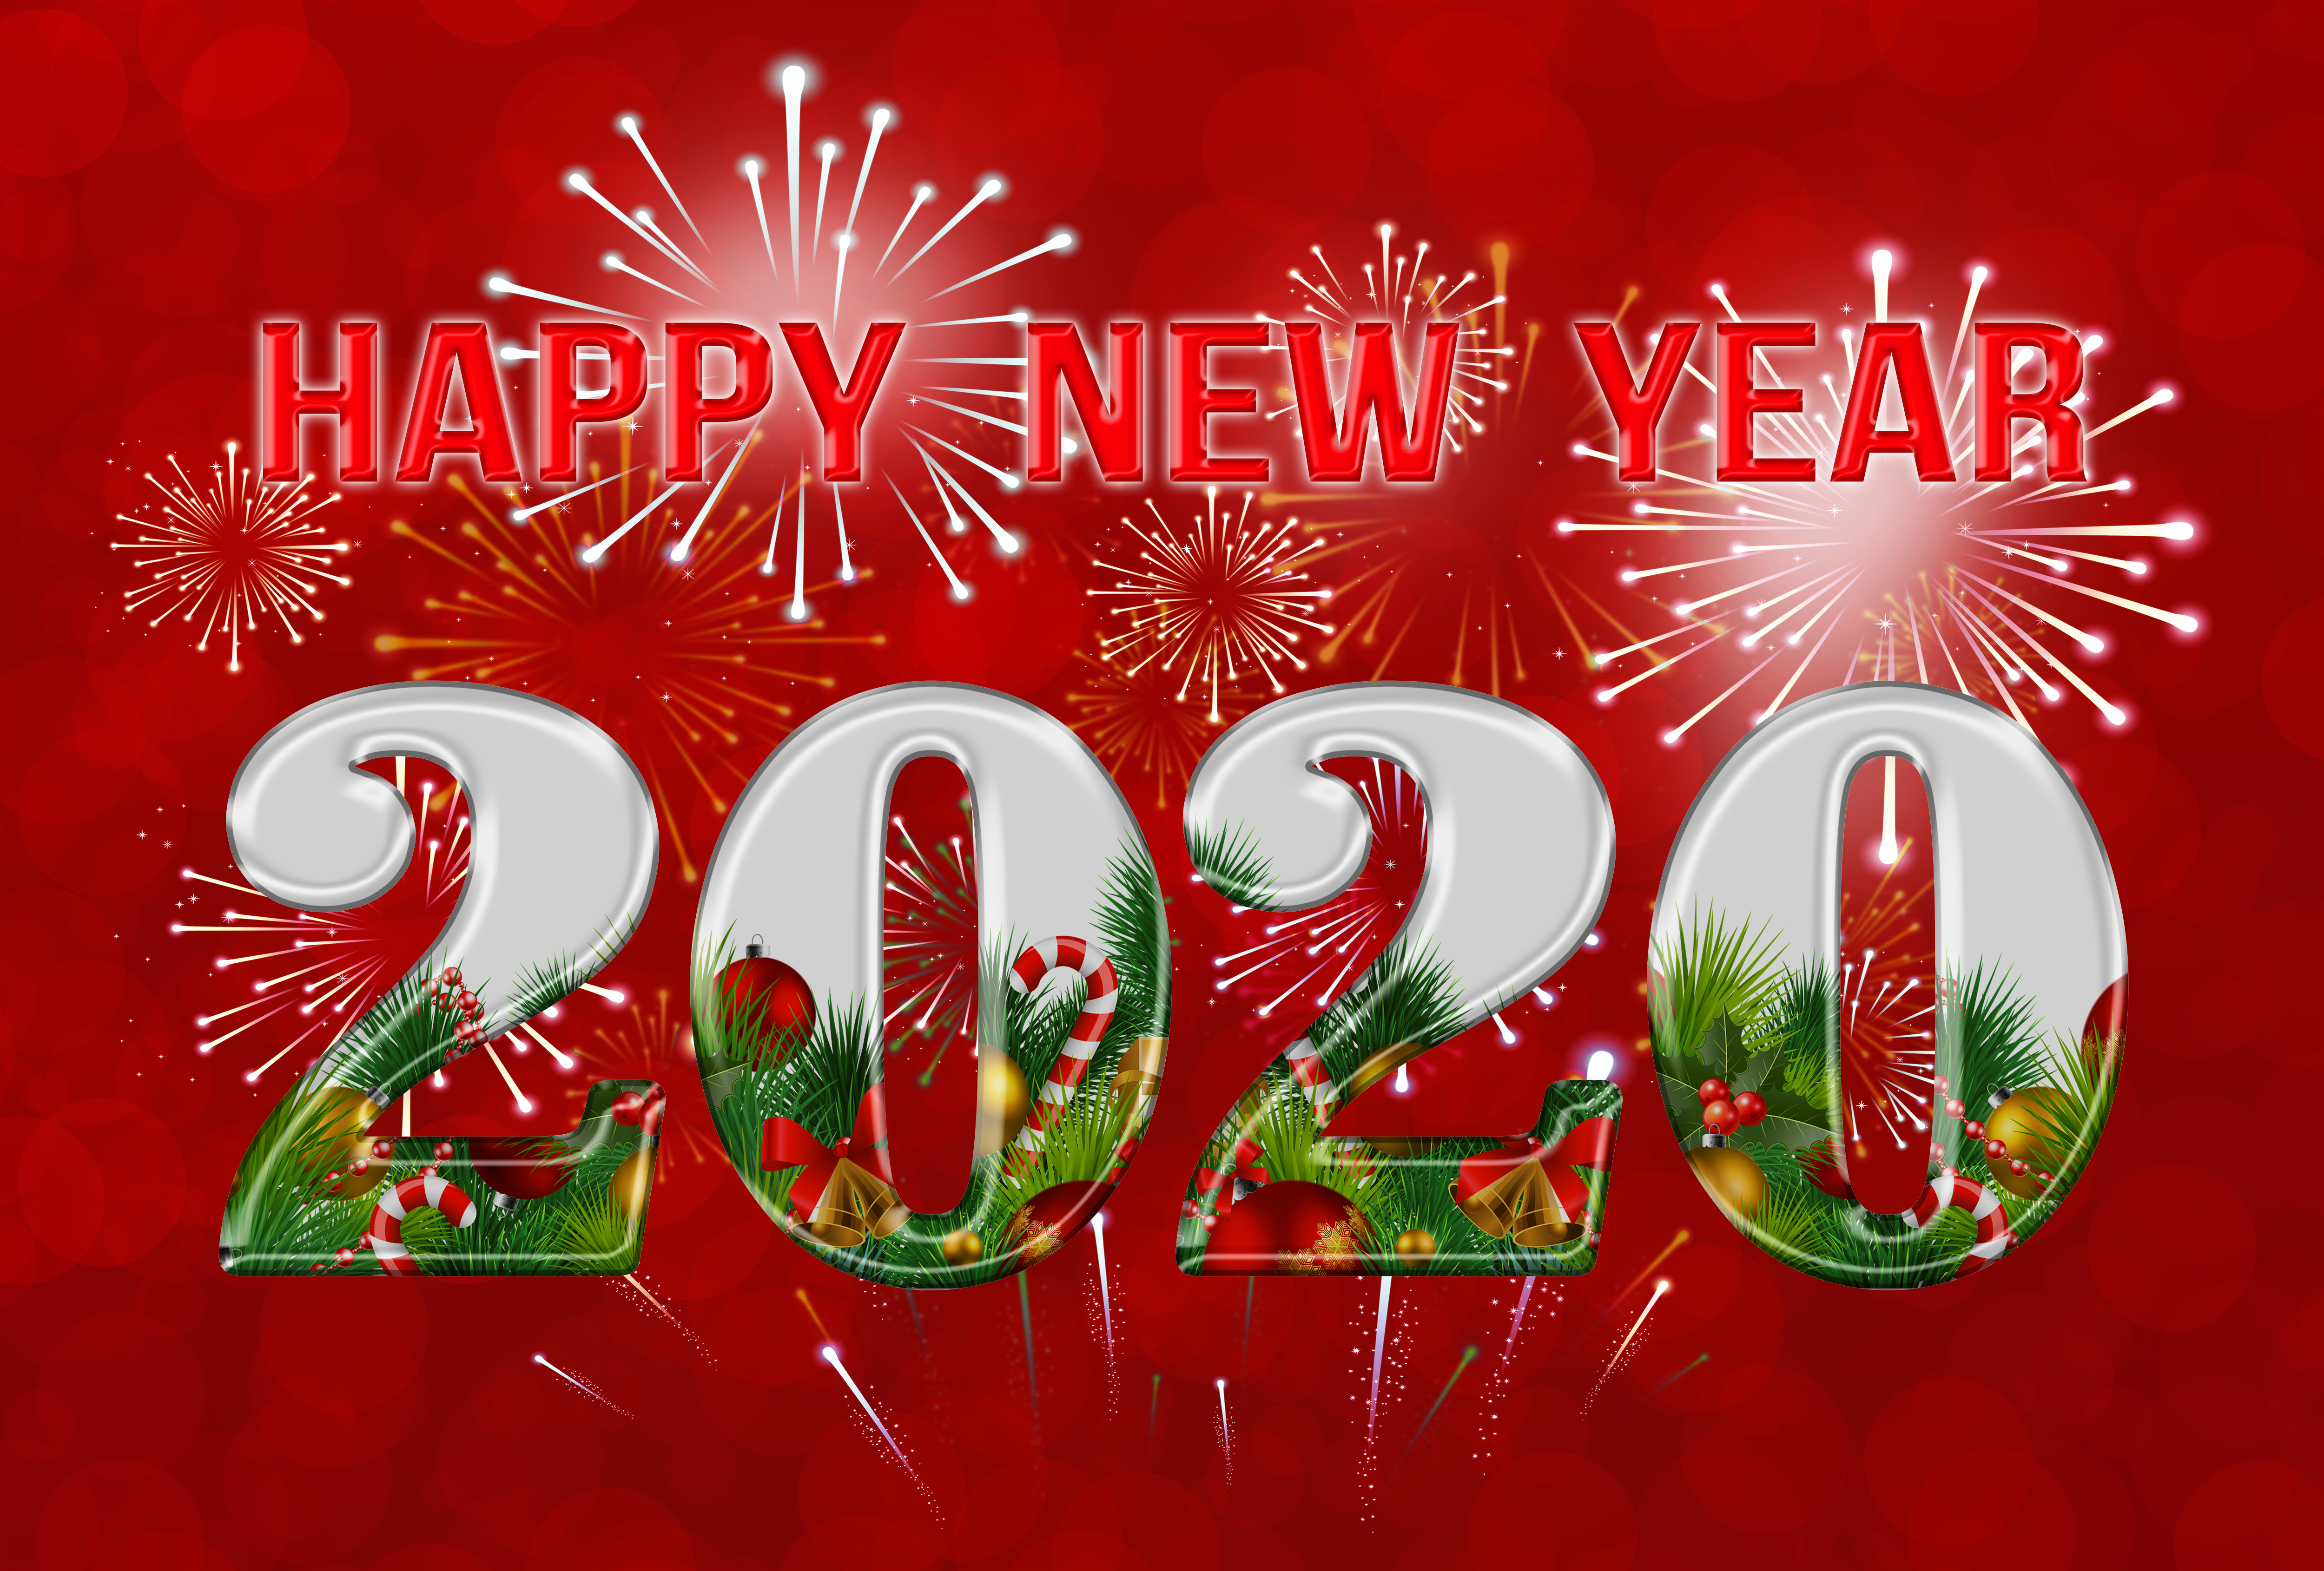 Happy New Year 2020 Red Background Gallery Yopriceville   High 5000x3381